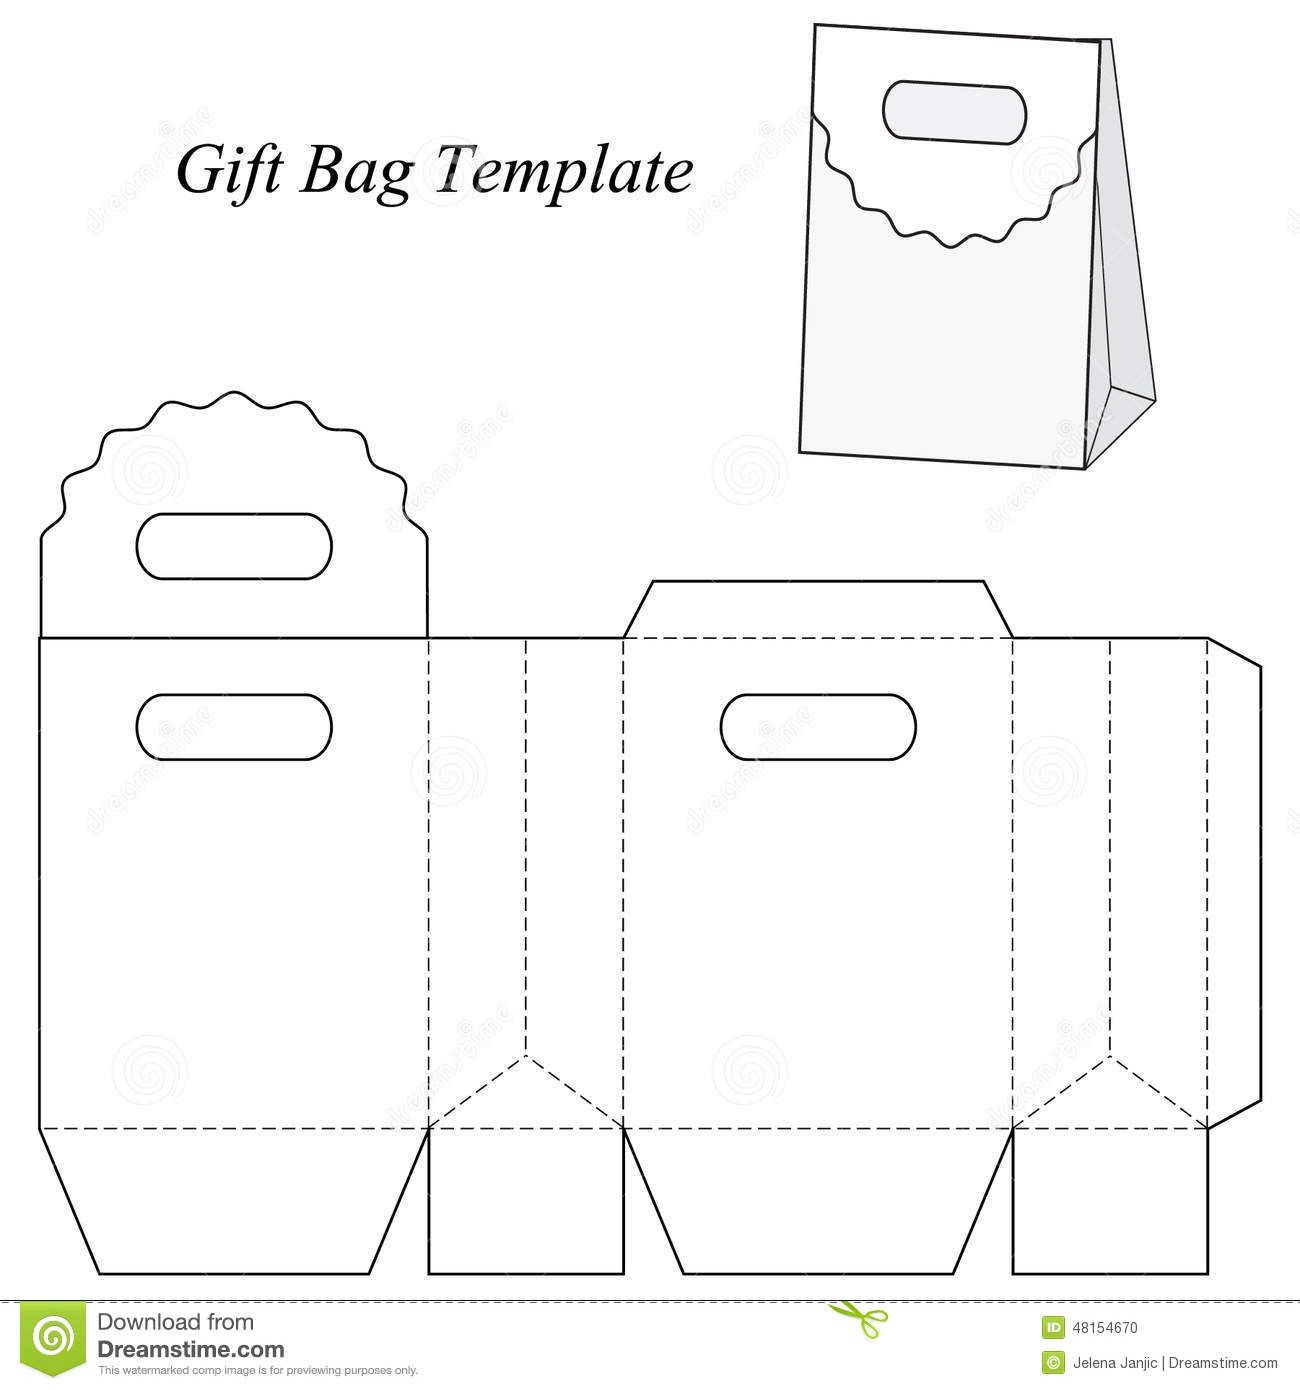 blank-gift-bag-template-vector-illustration-box-box-48154670.jpg ...